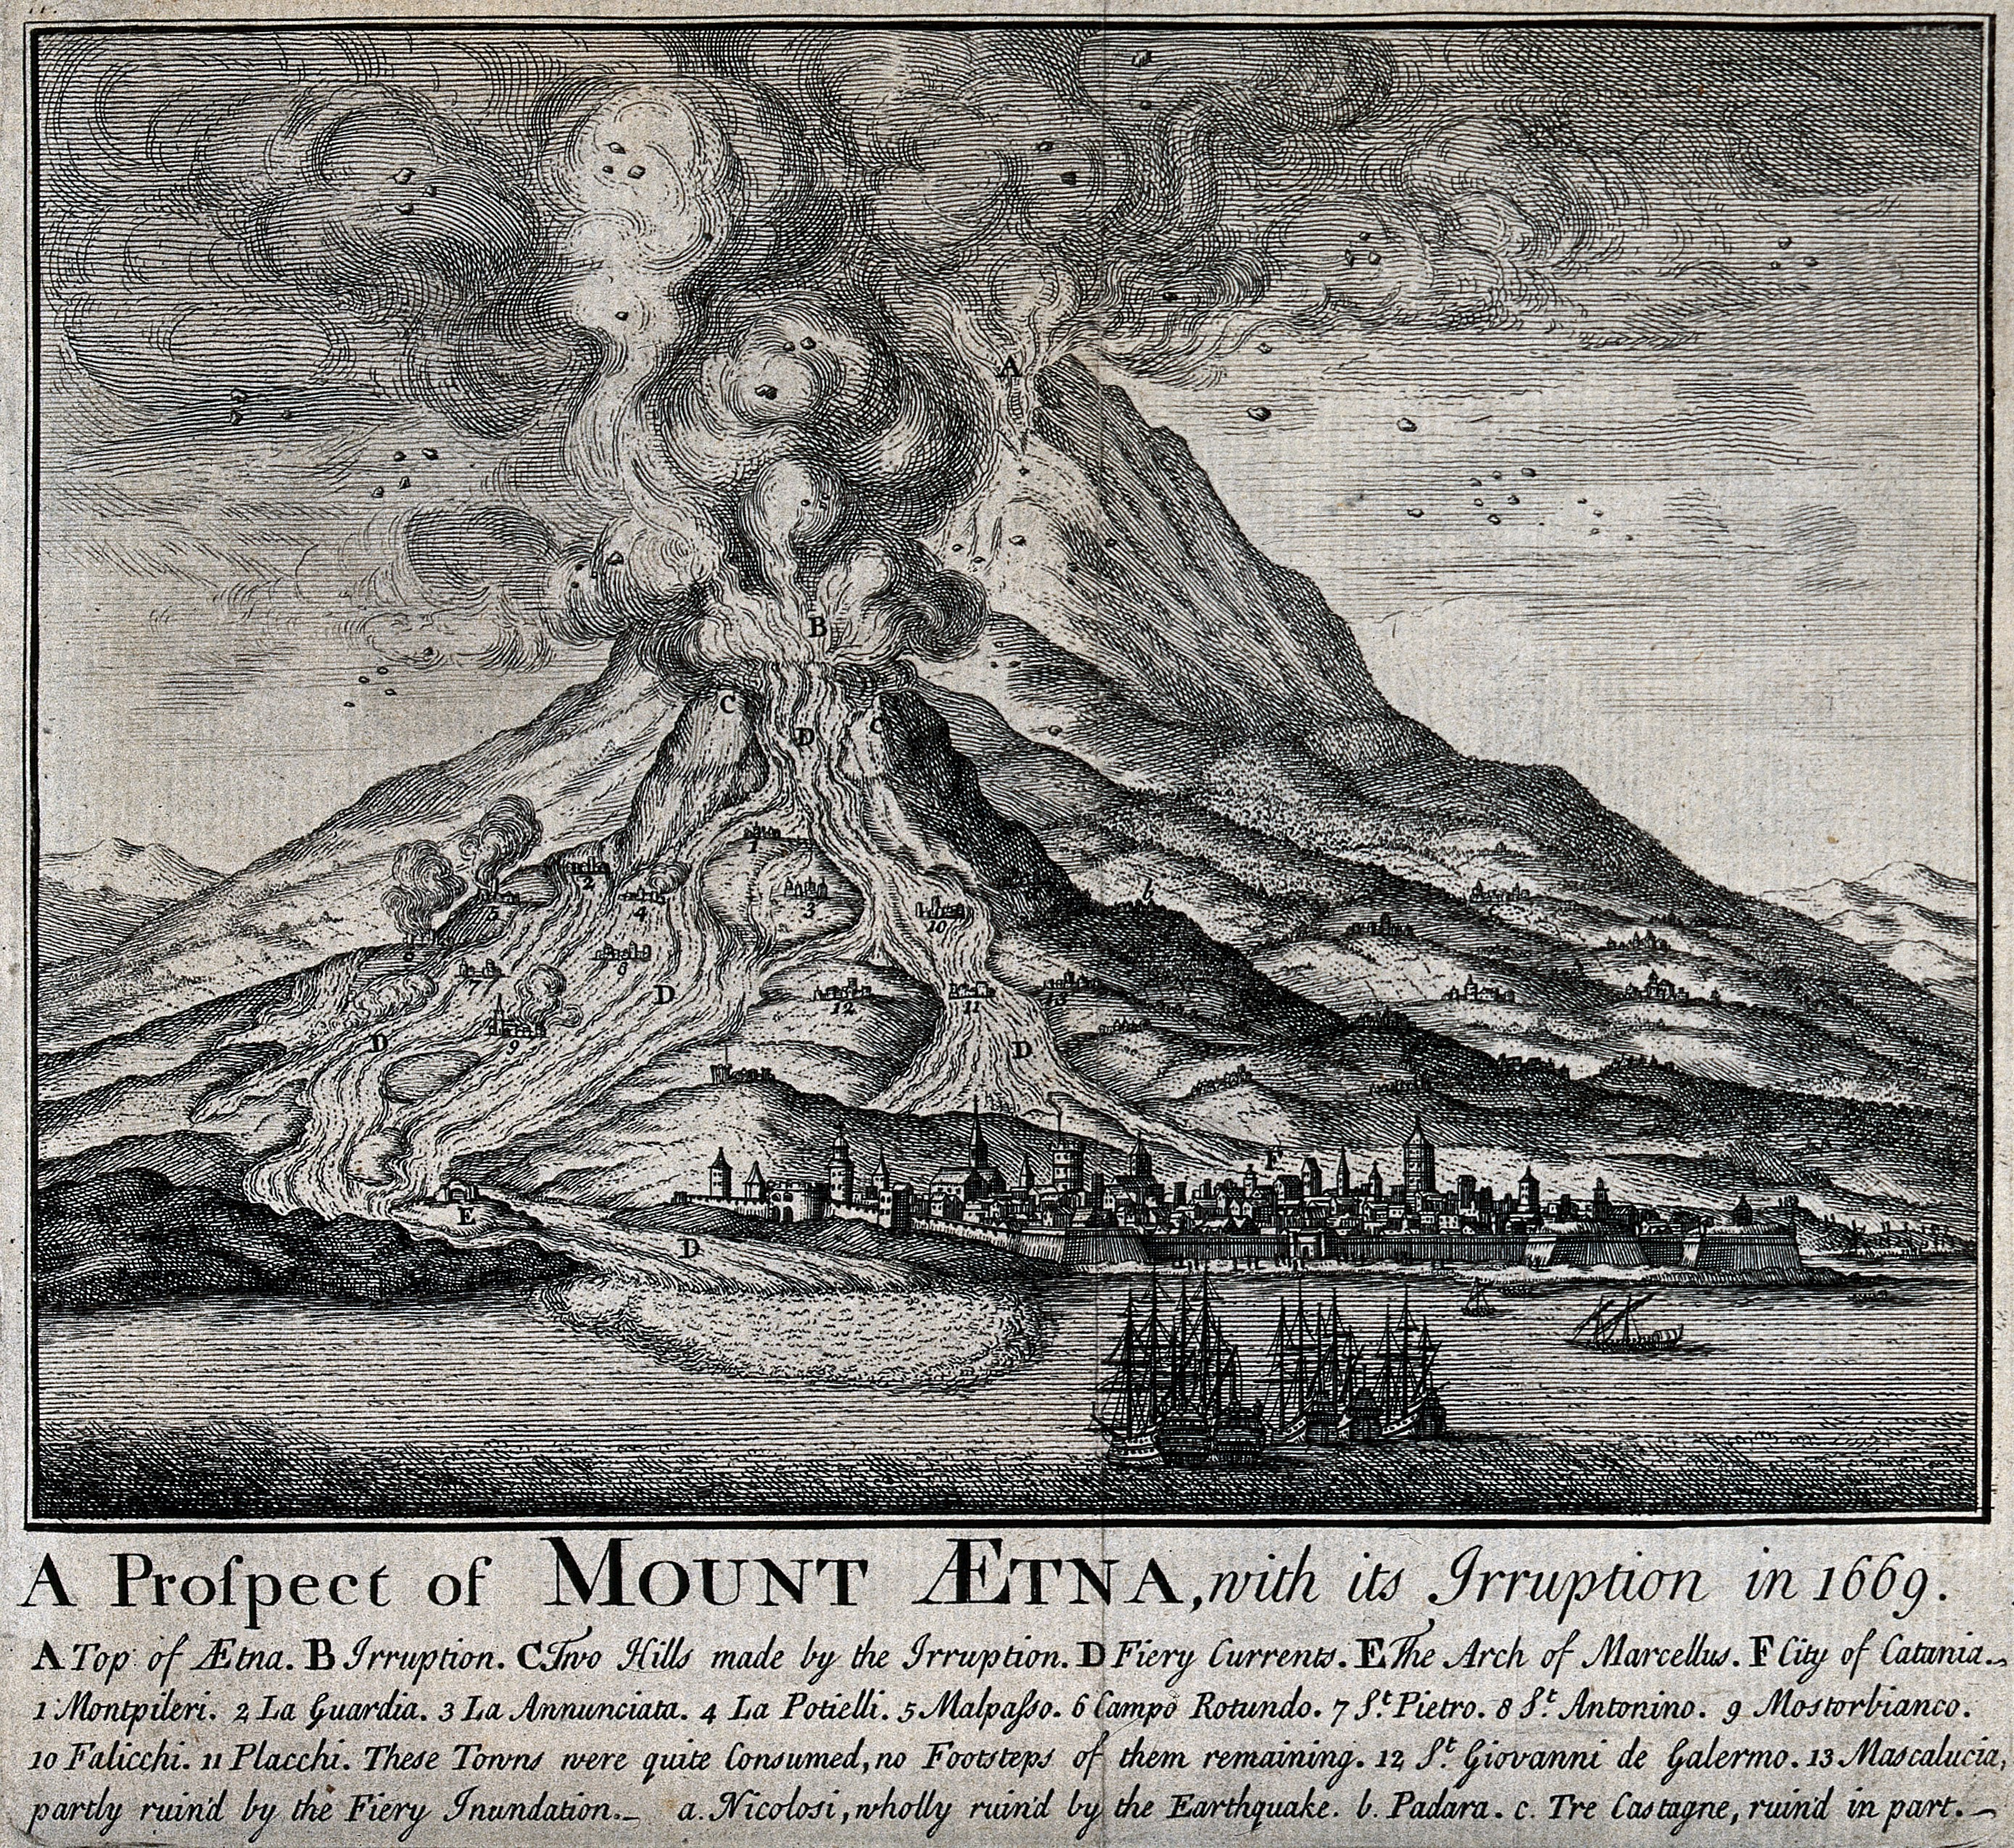 File:The eruption of Mount Etna in 1669. Etching. Wellcome V0025181.jpg